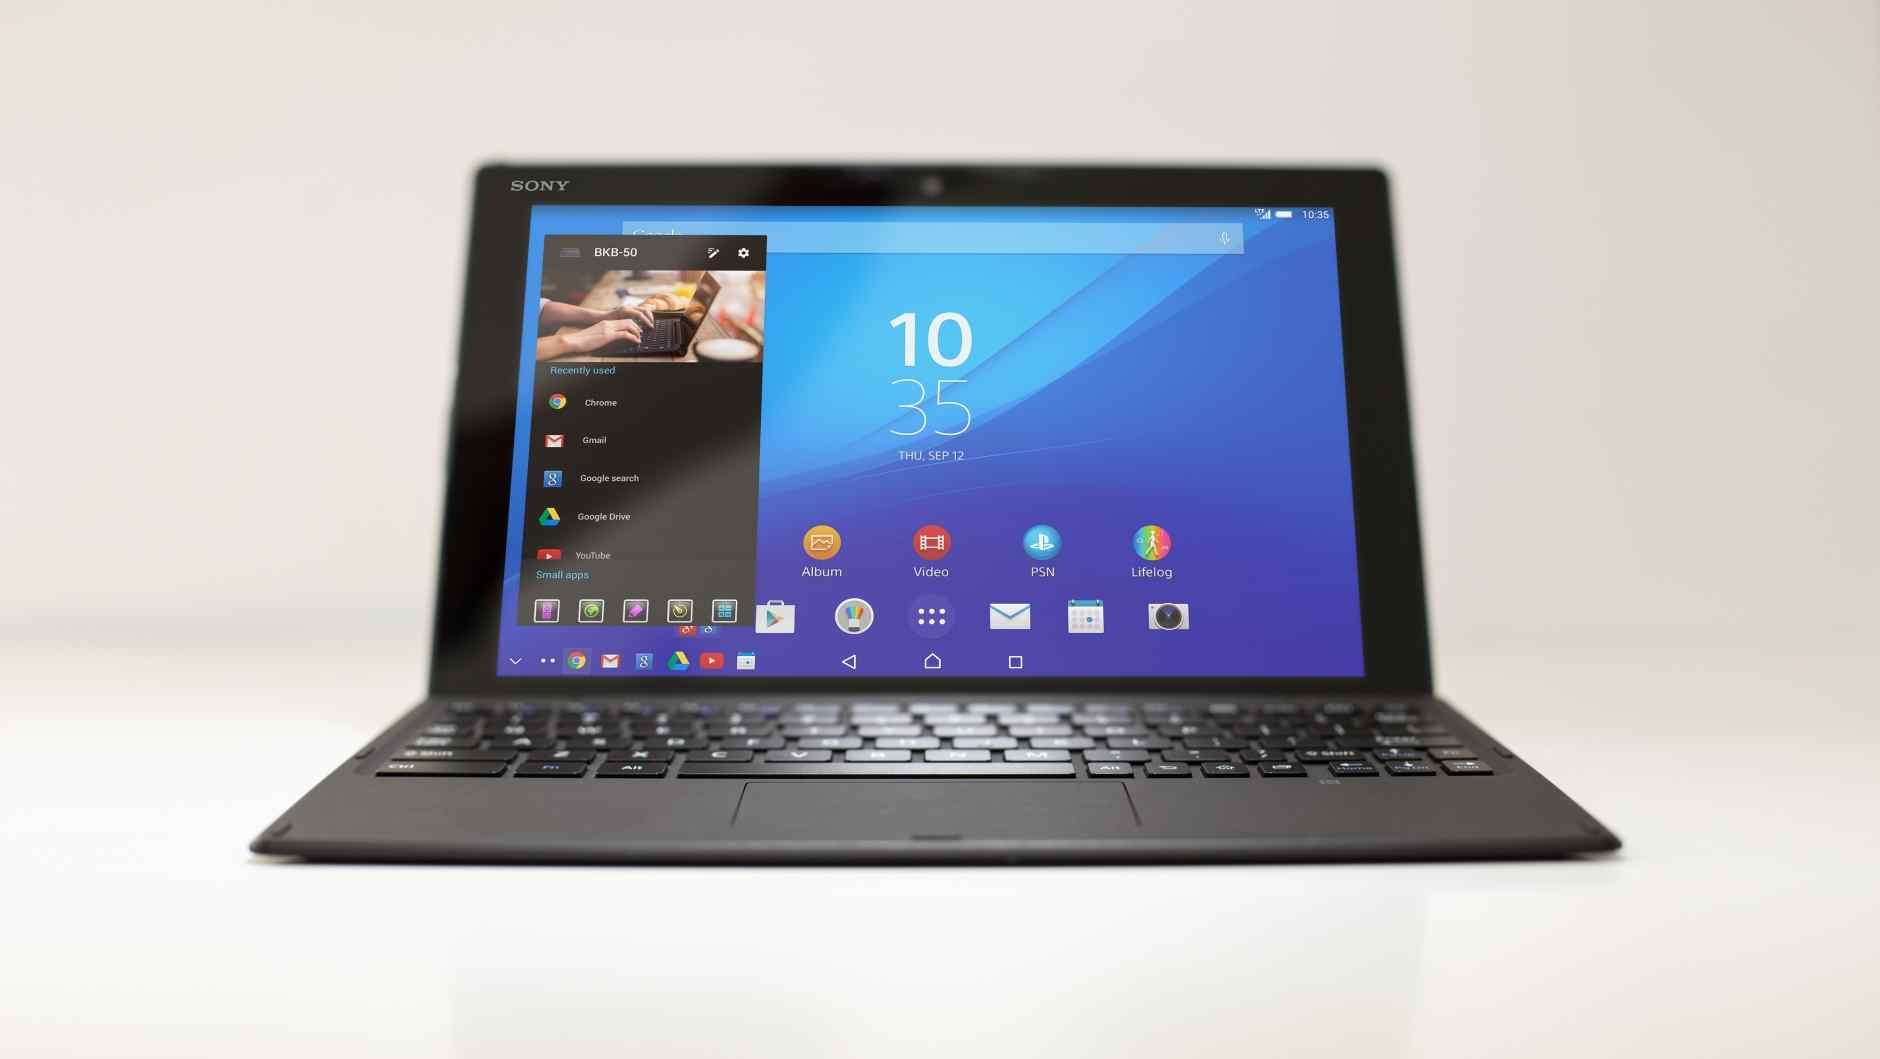 xperia-z4-tablet-business-tablet-into-laptop-26ef6fb3475dcf05c518ef7400089051-940x2